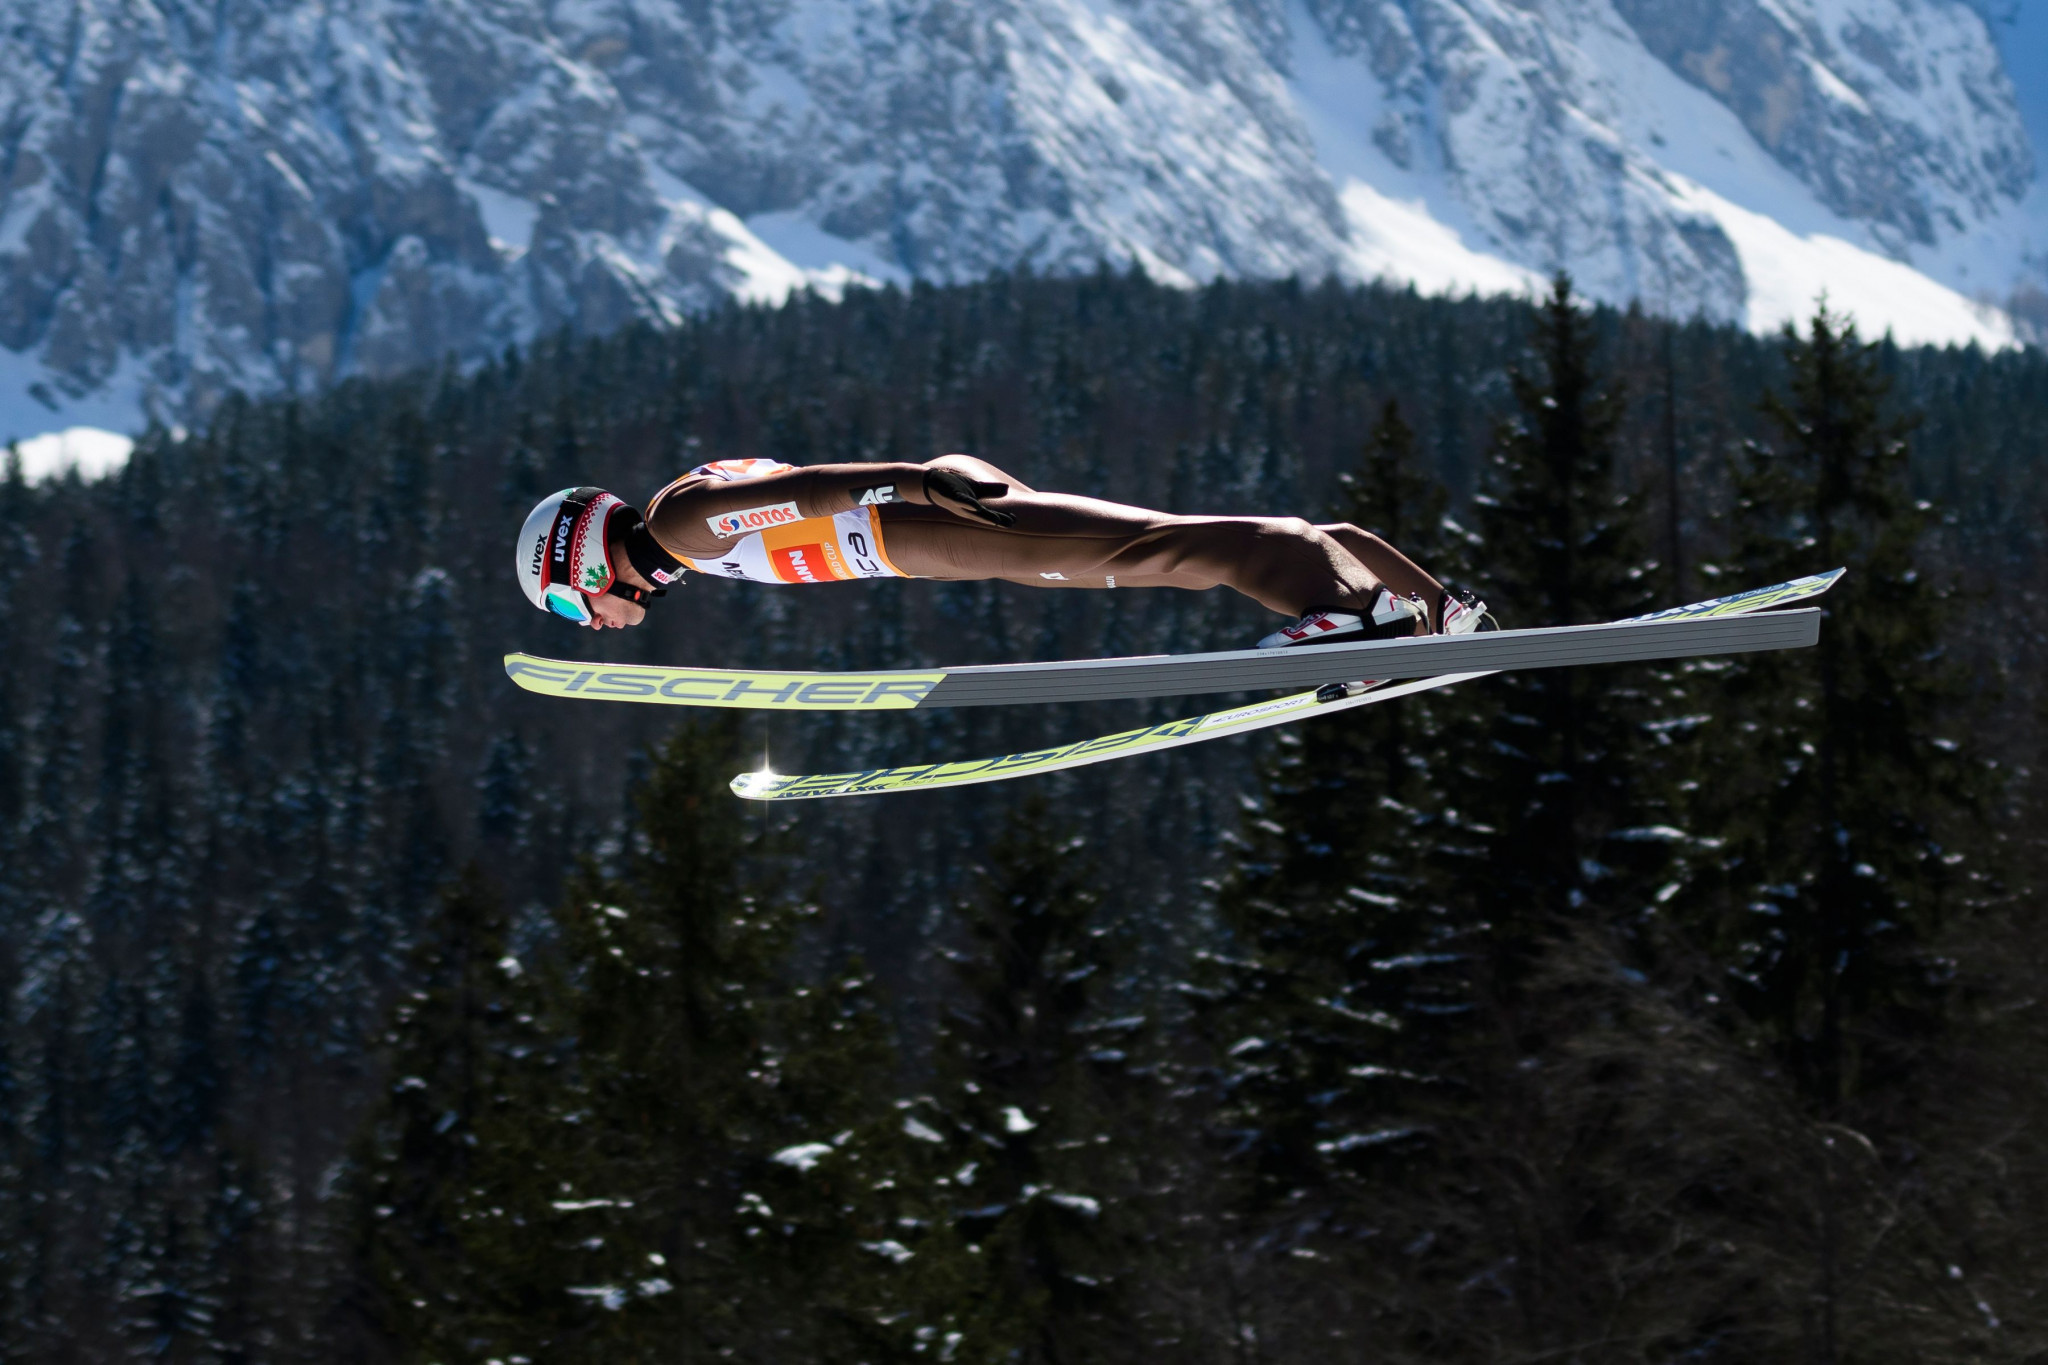 Stoch wins yet again at FIS Ski Jumping World Cup Final in Planica